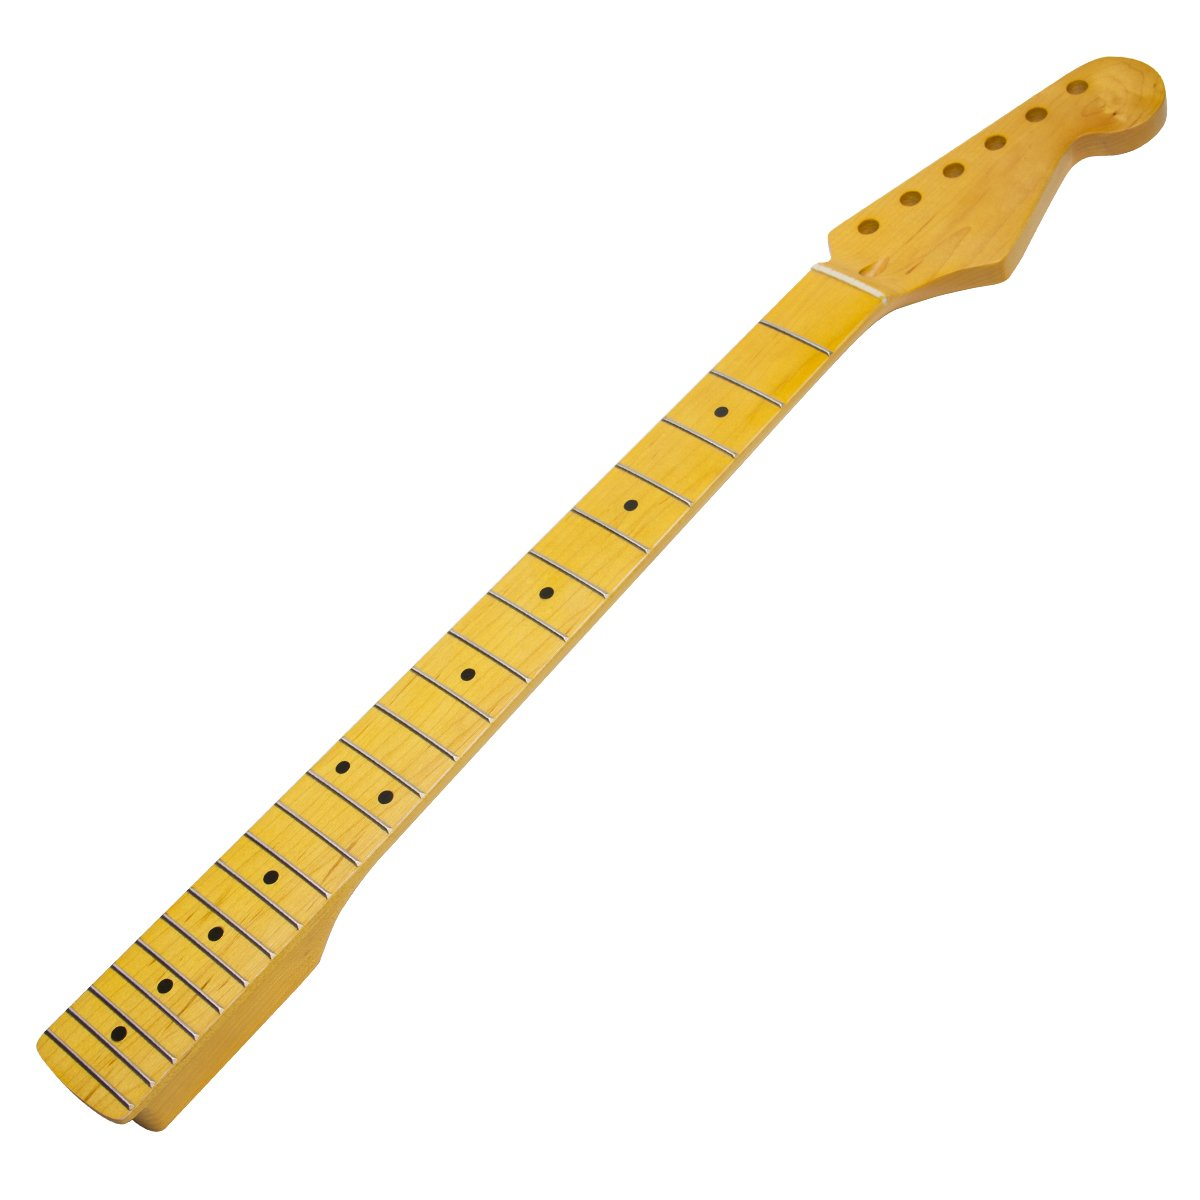 1pc Classic Yellow Maple Guitar Neck 22 Fret Full Fretjob for Fender St Replacement Ltd A0666